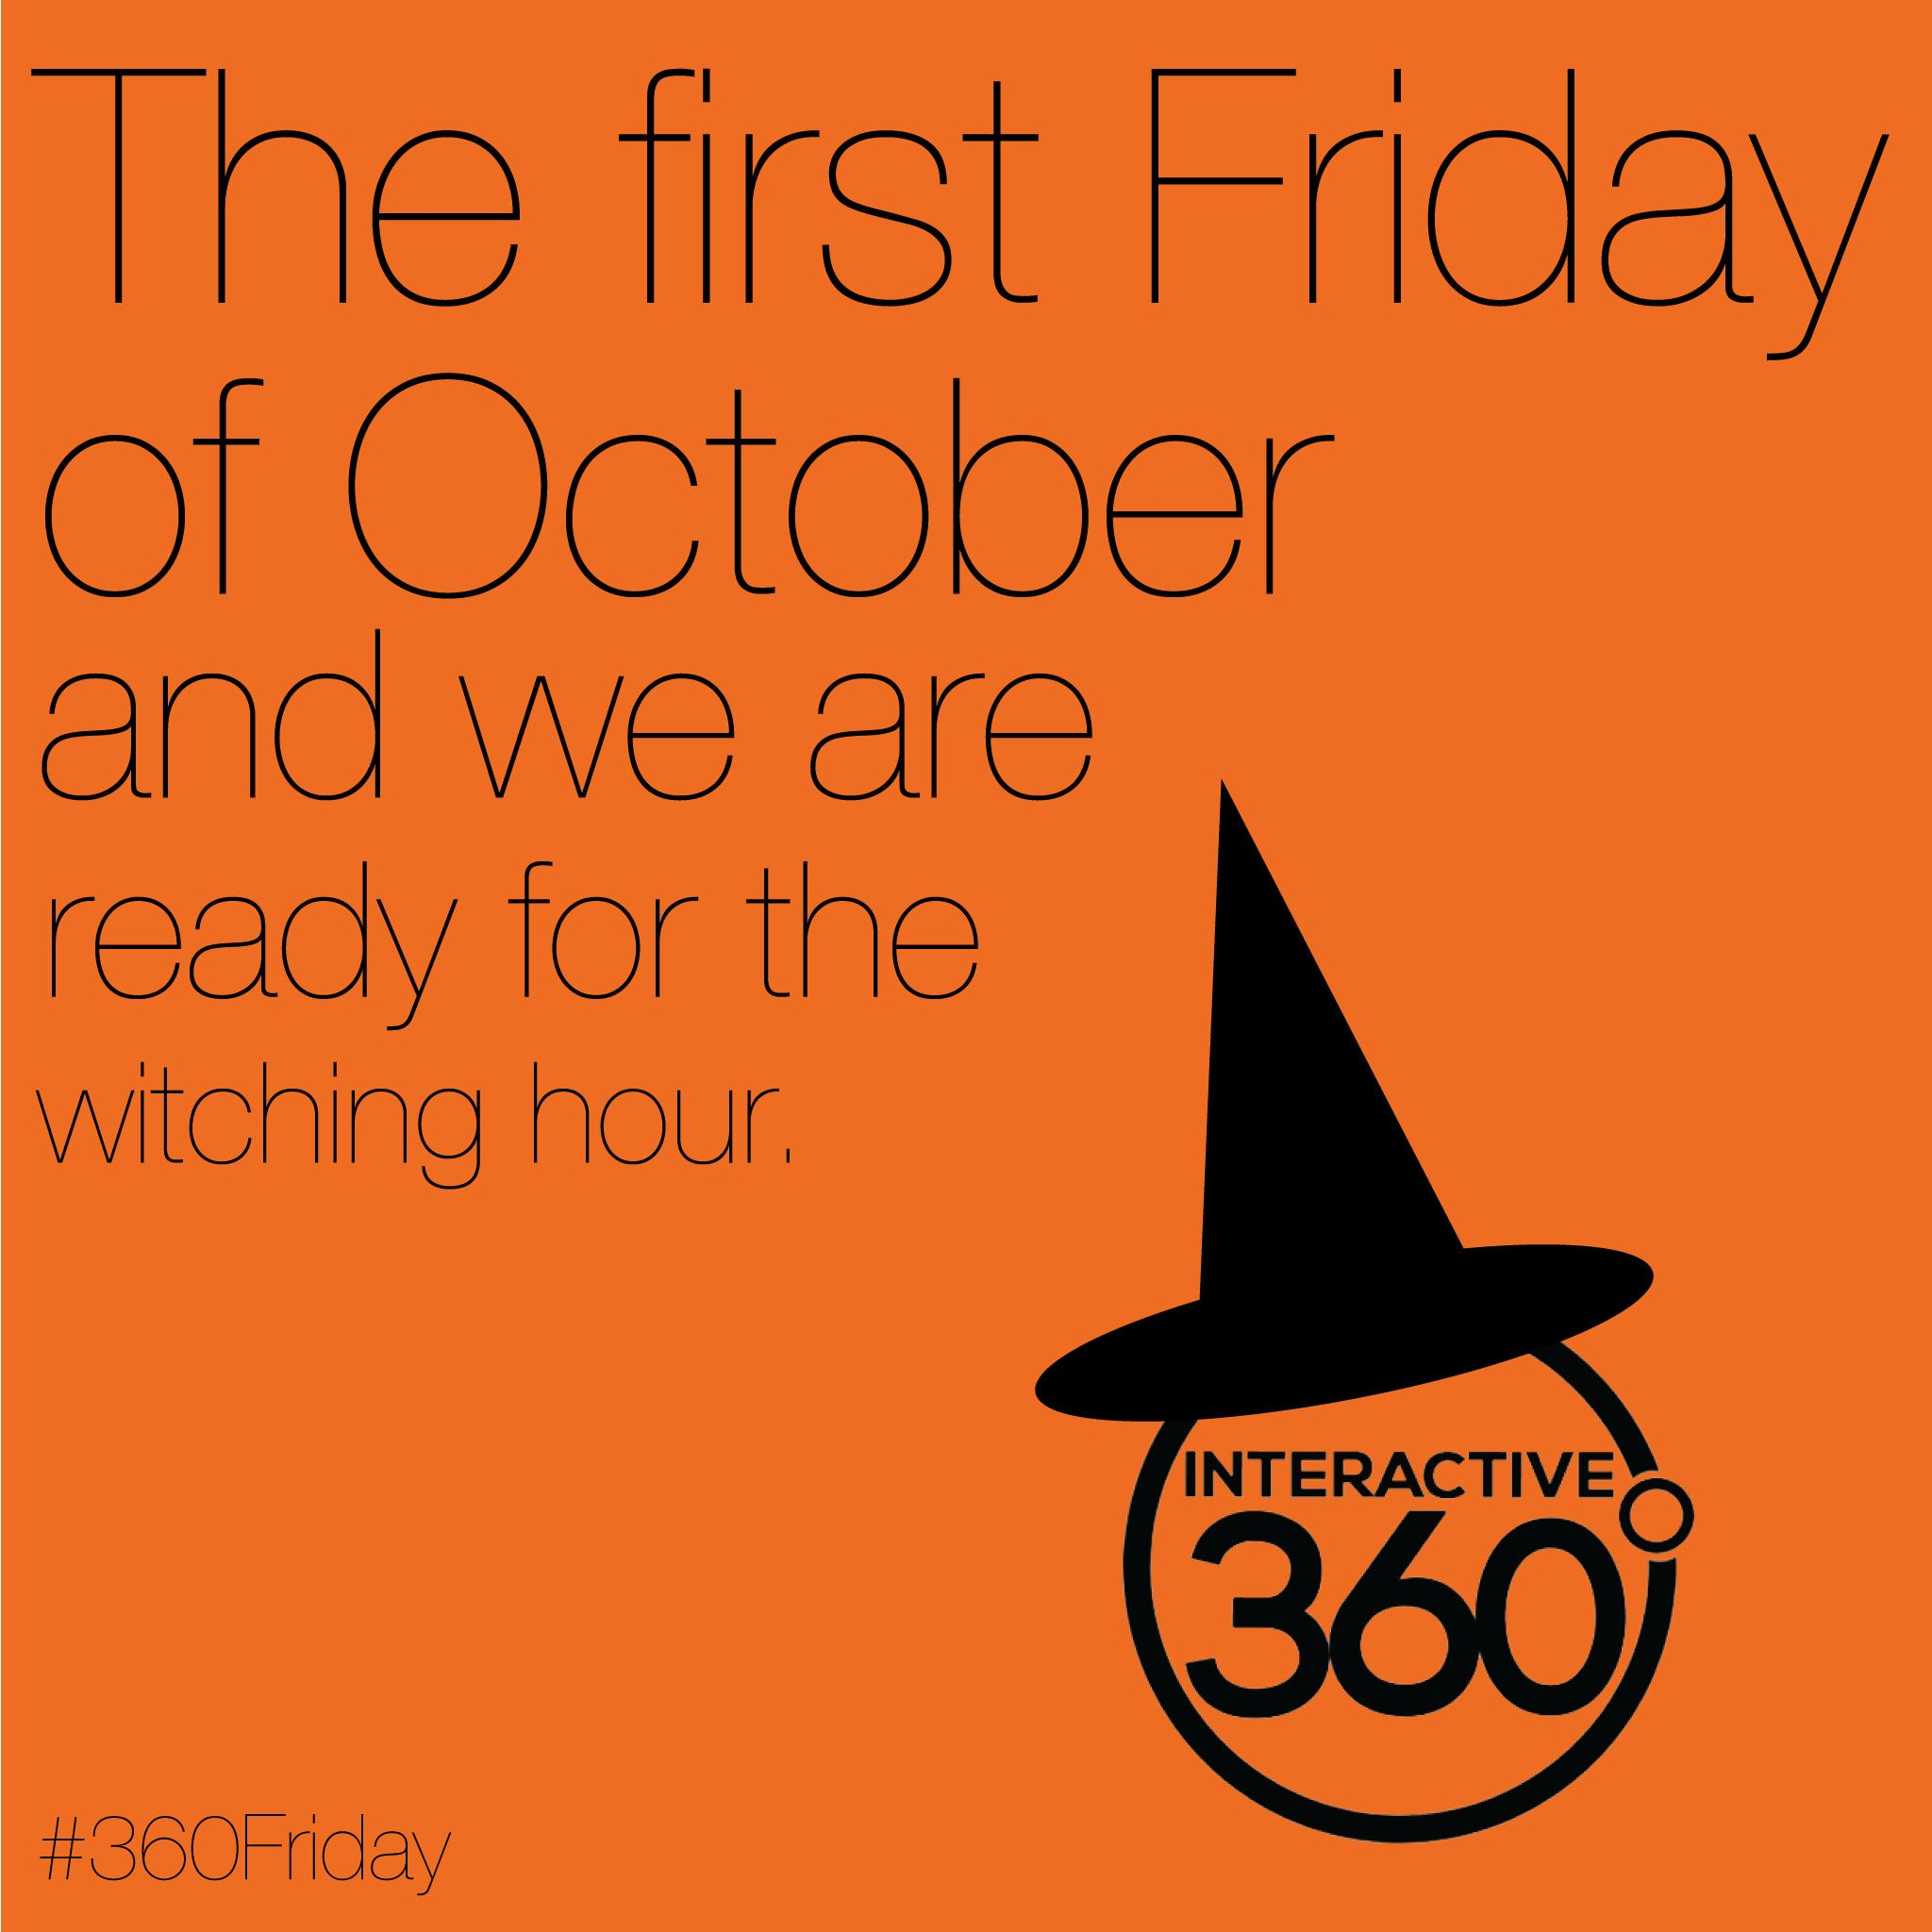 It's Friday in October and we are ready for the witching